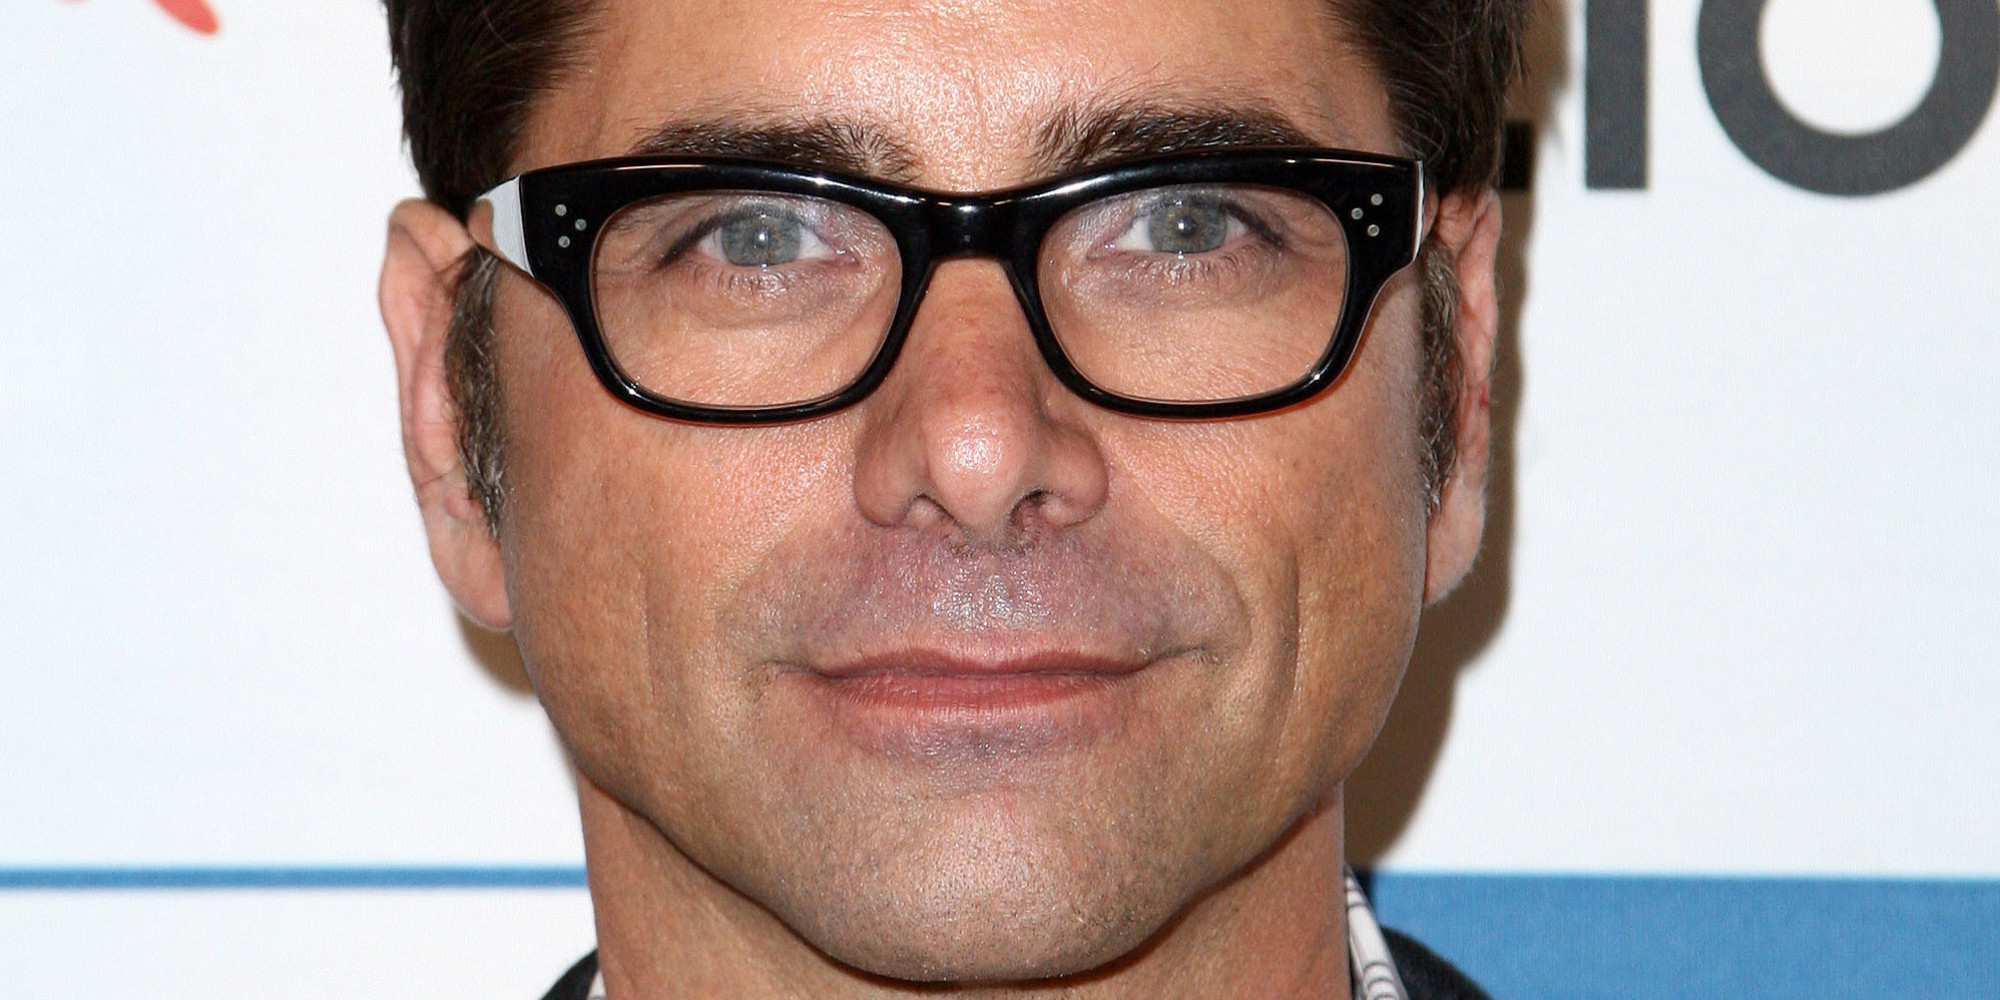 John Stamos Arrested For DUI, Hospitalized | The Huffington Post